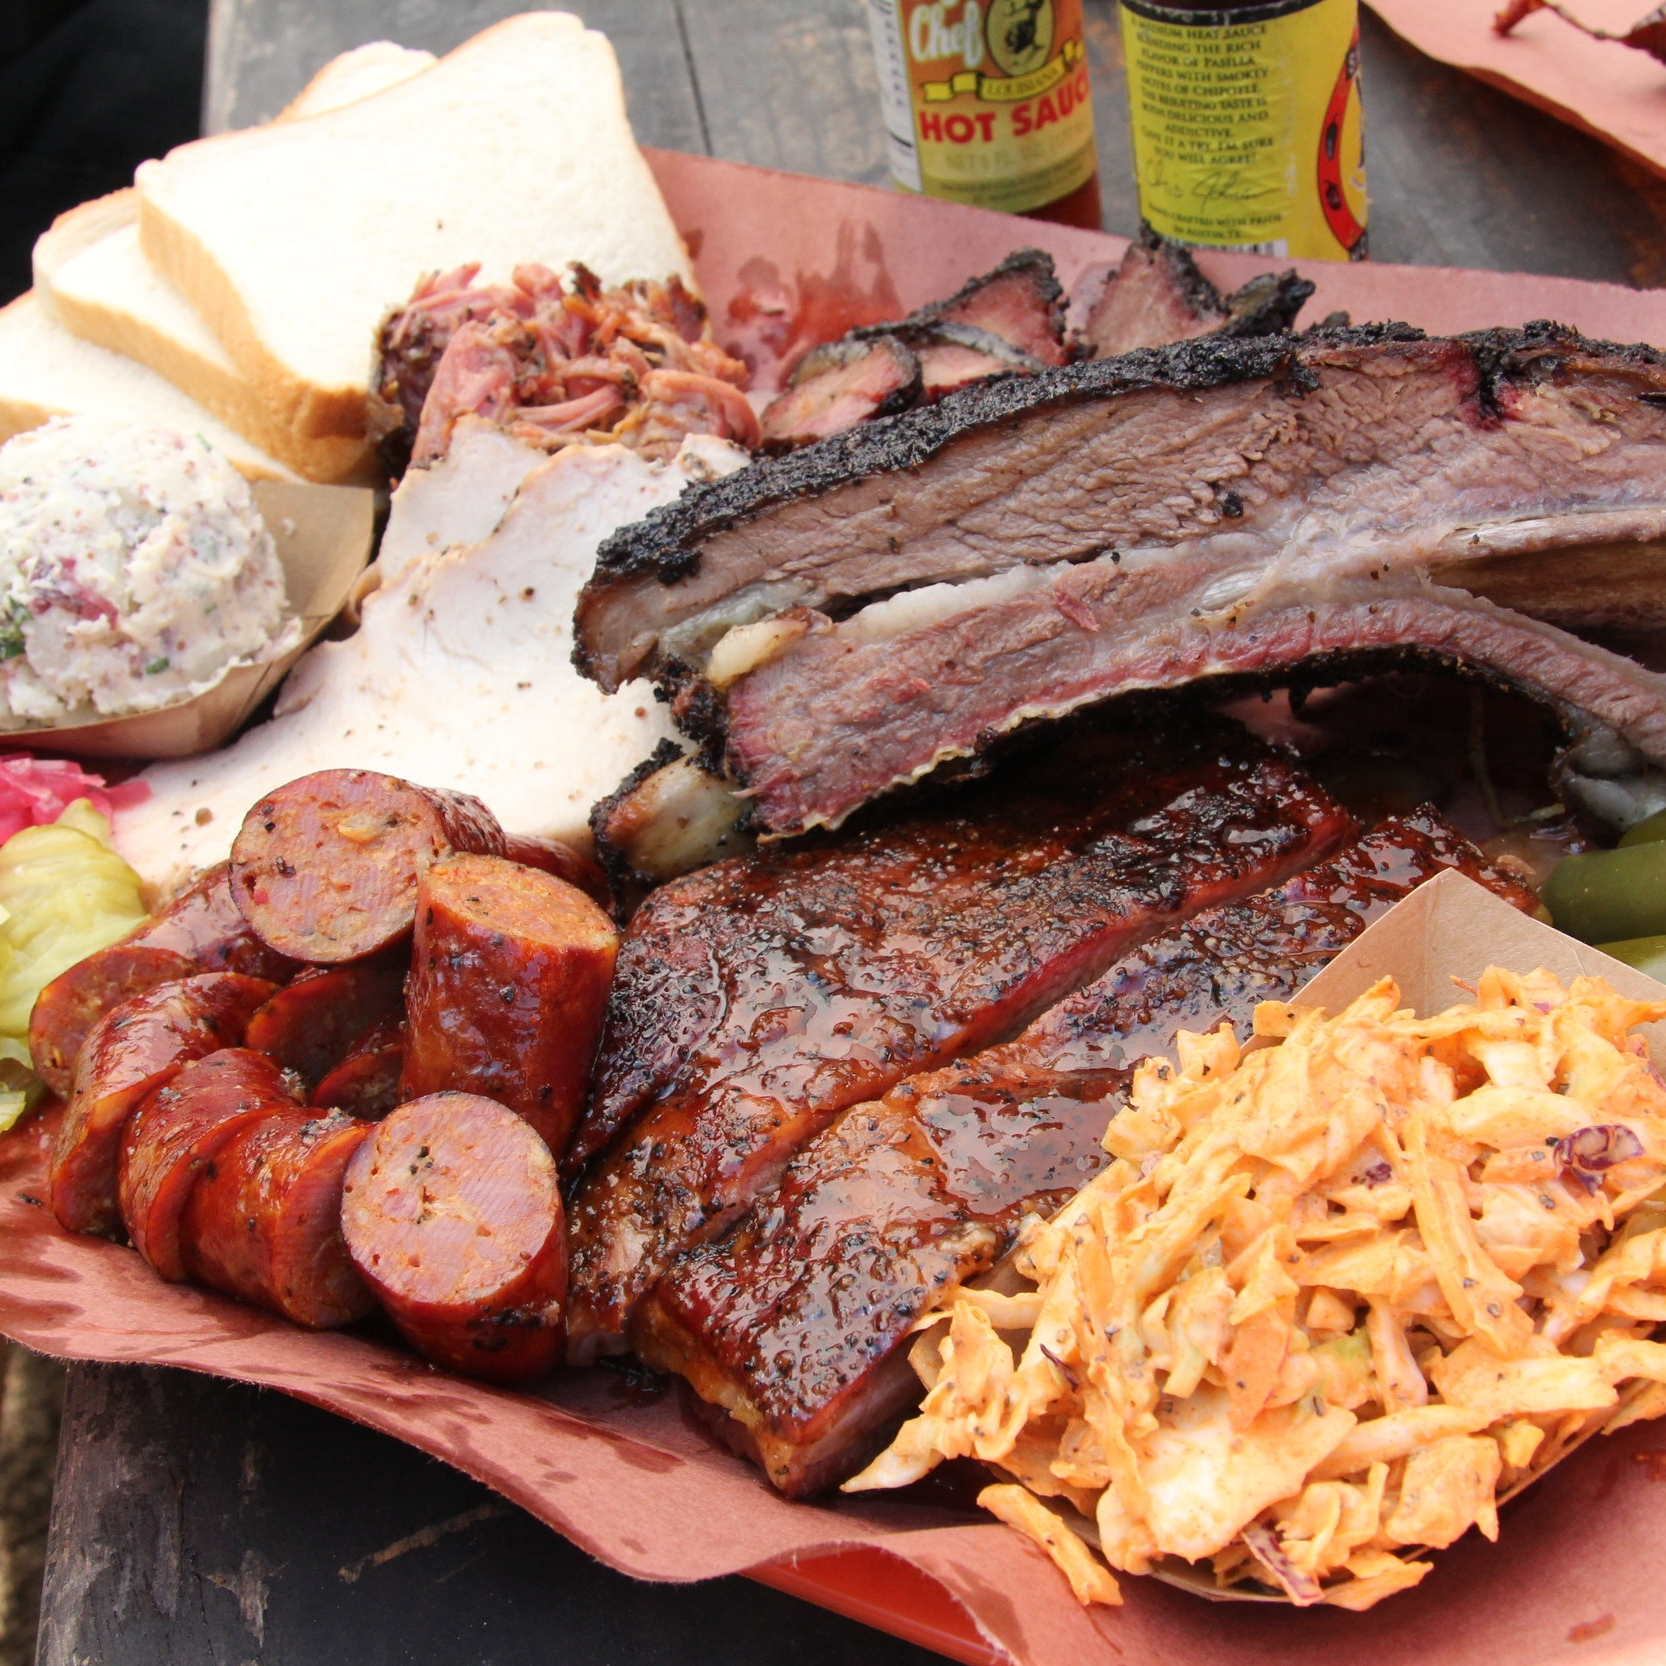 la-barbecue-38.jpg